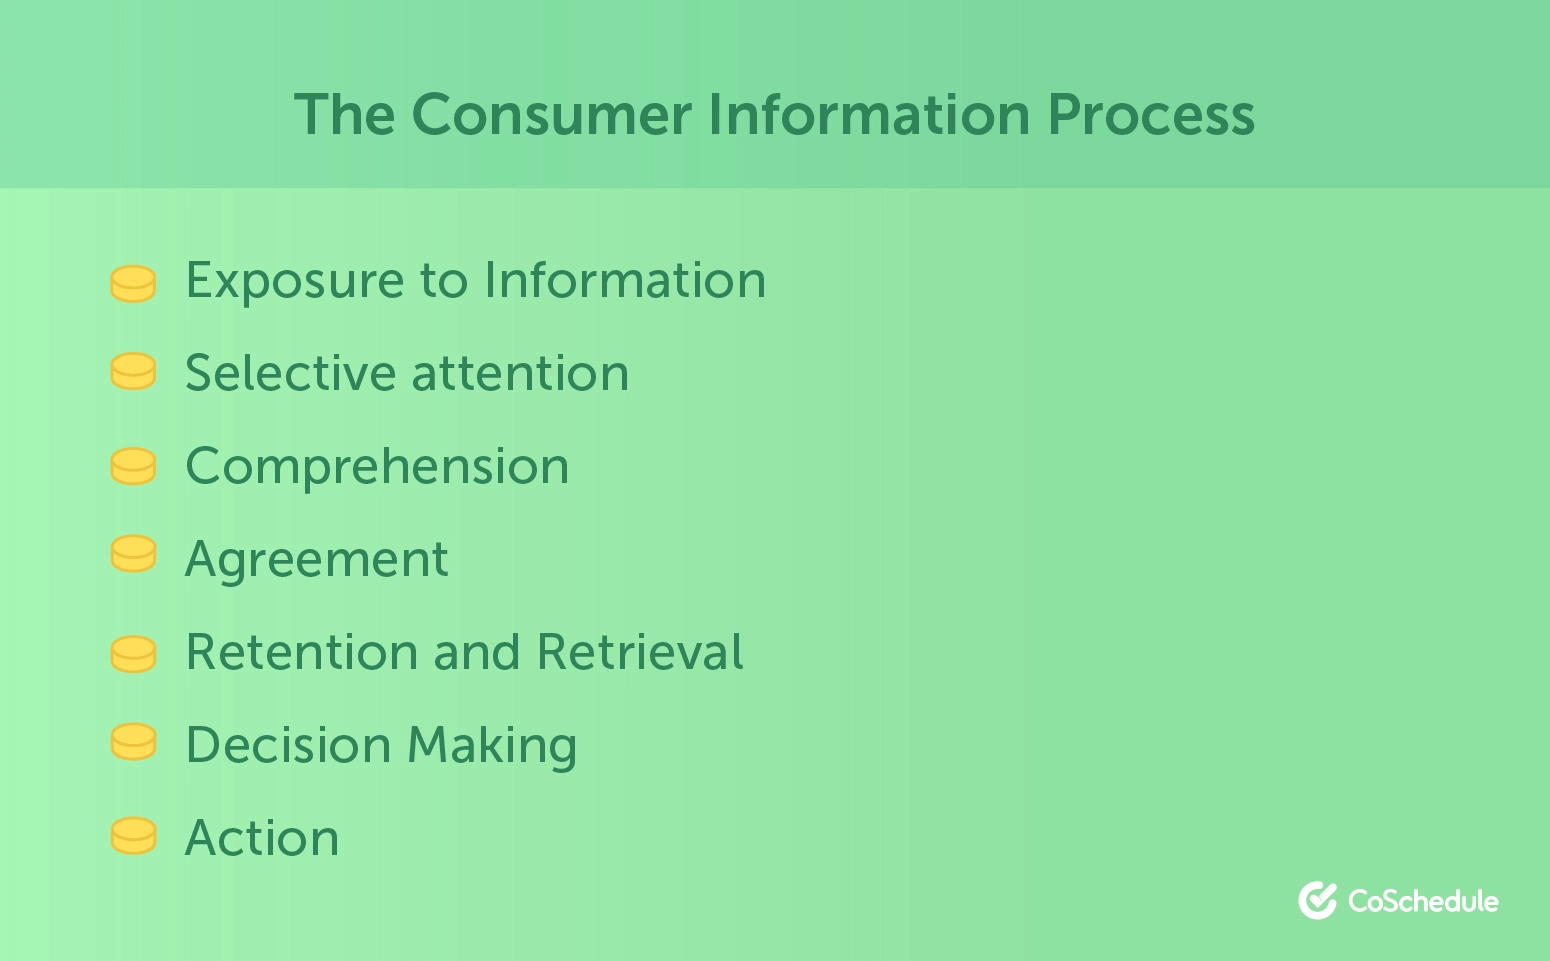 The Consumer Information Process